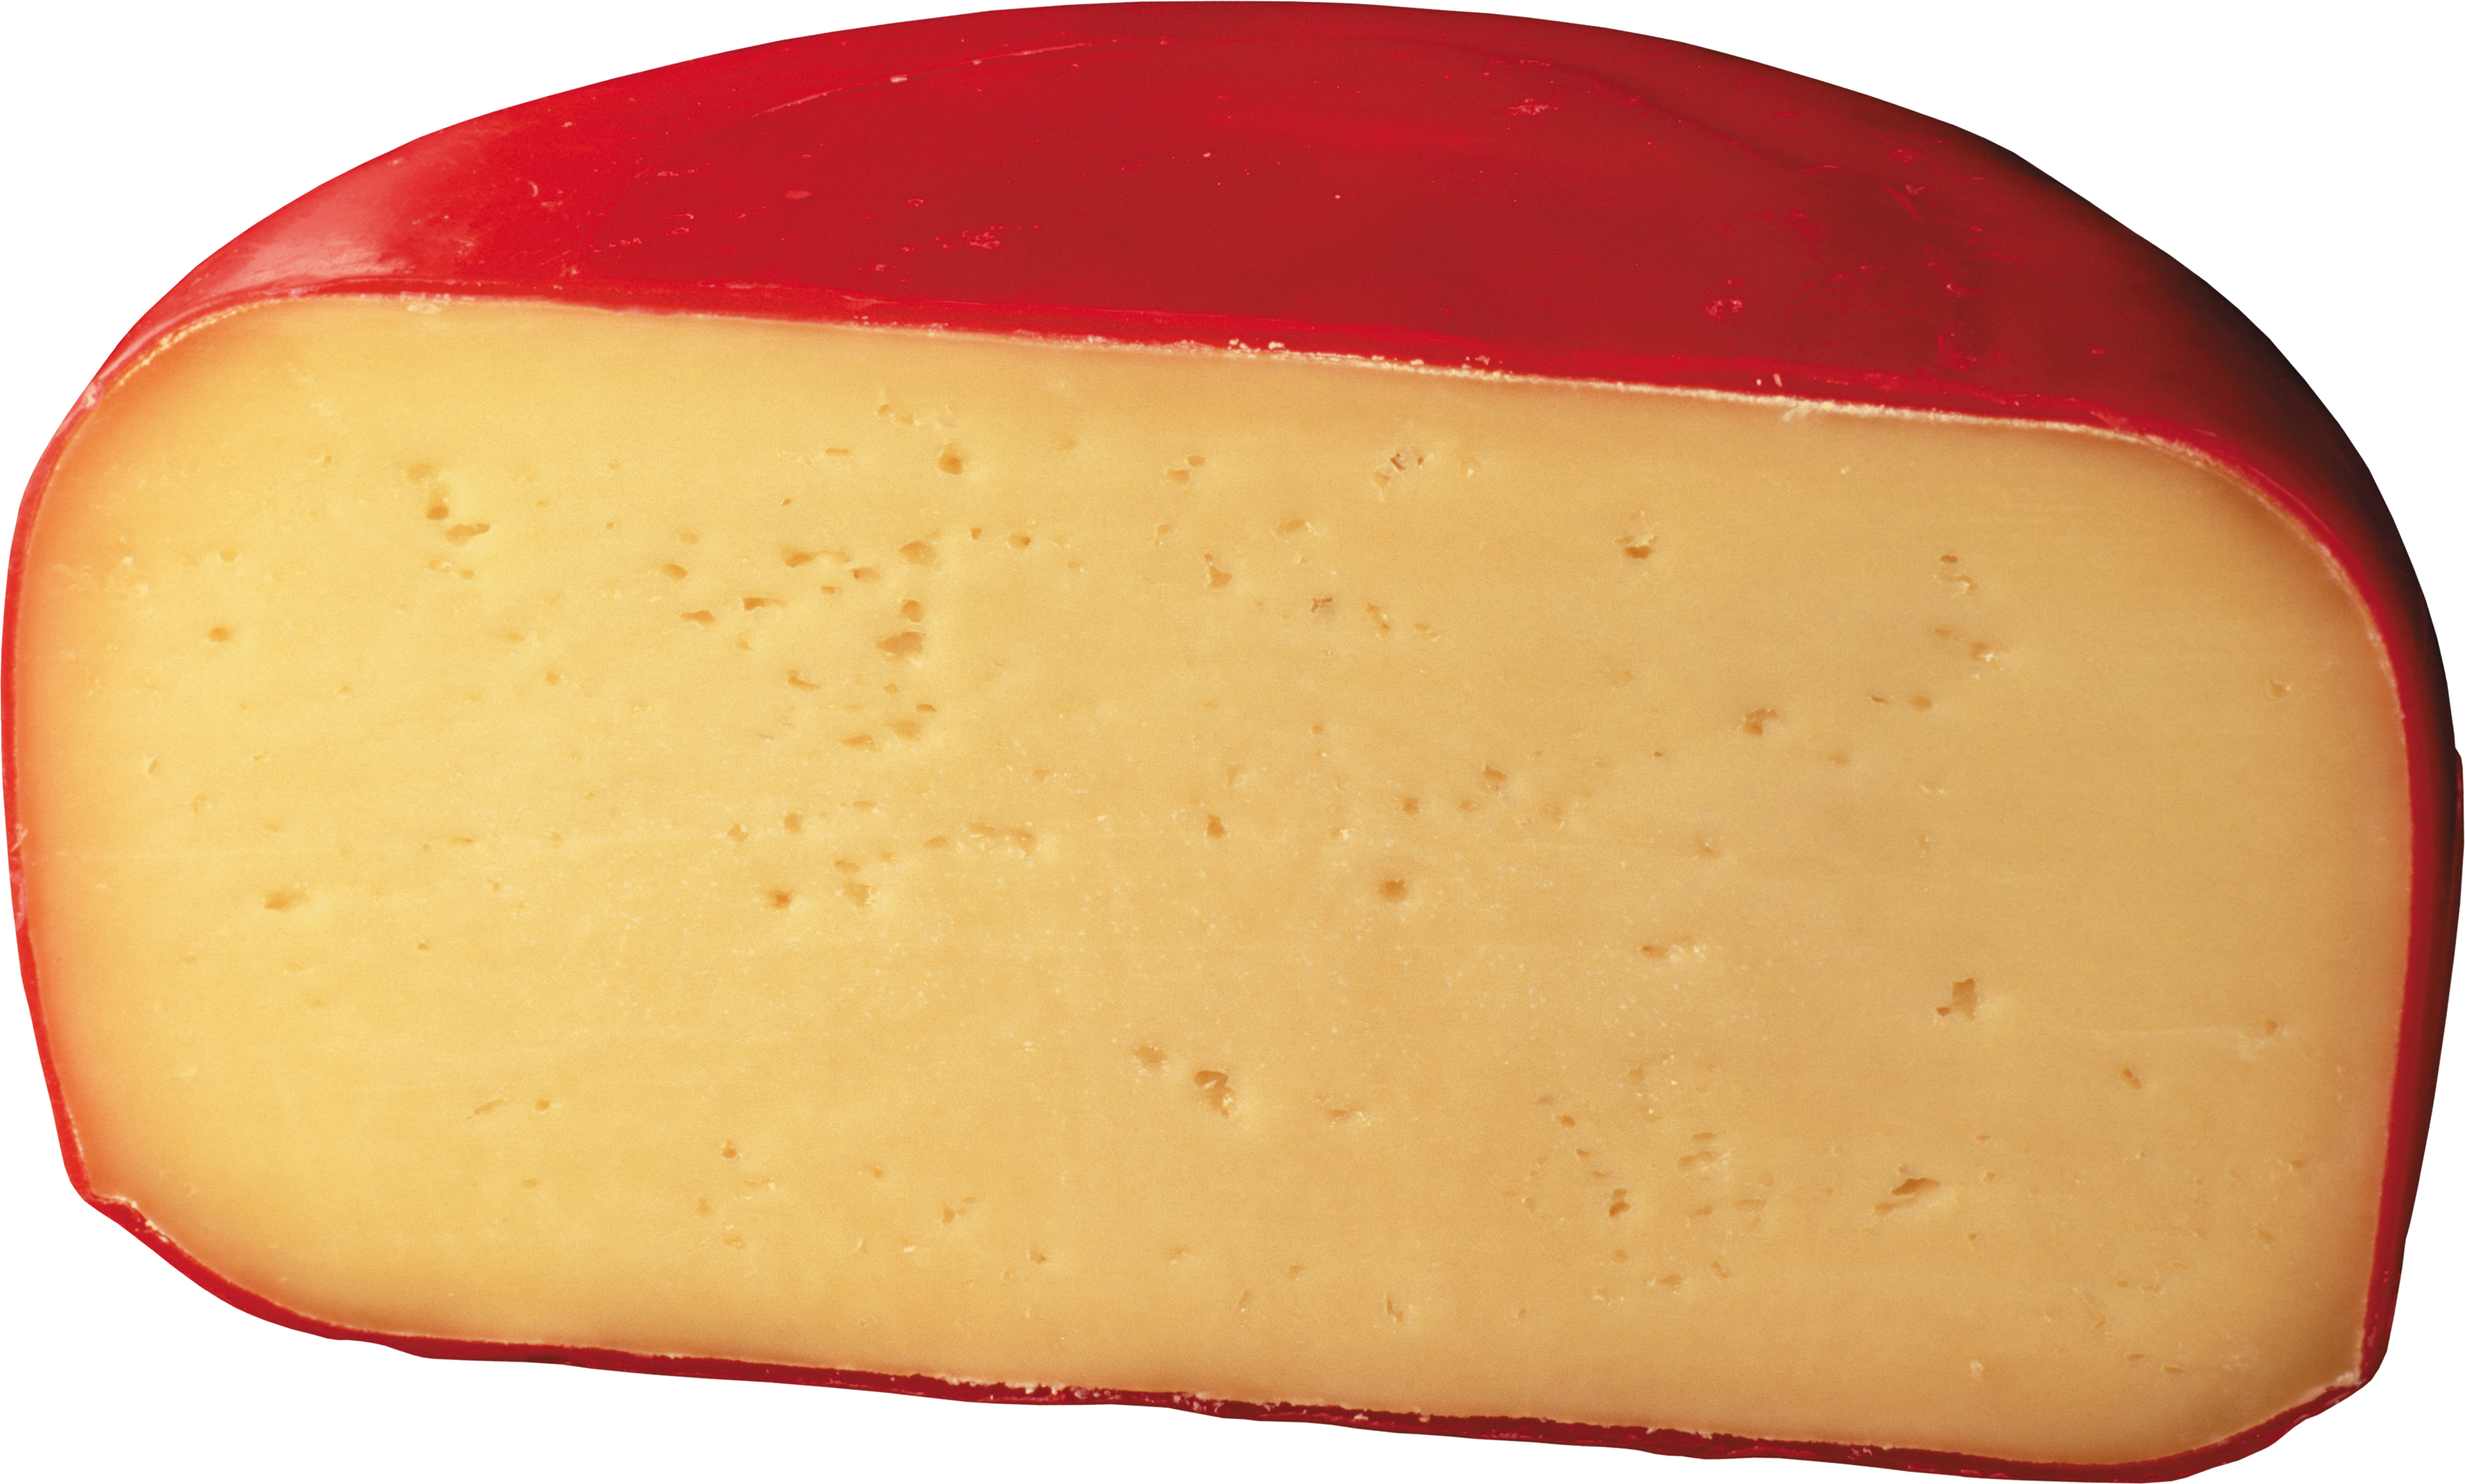 Cheese One.